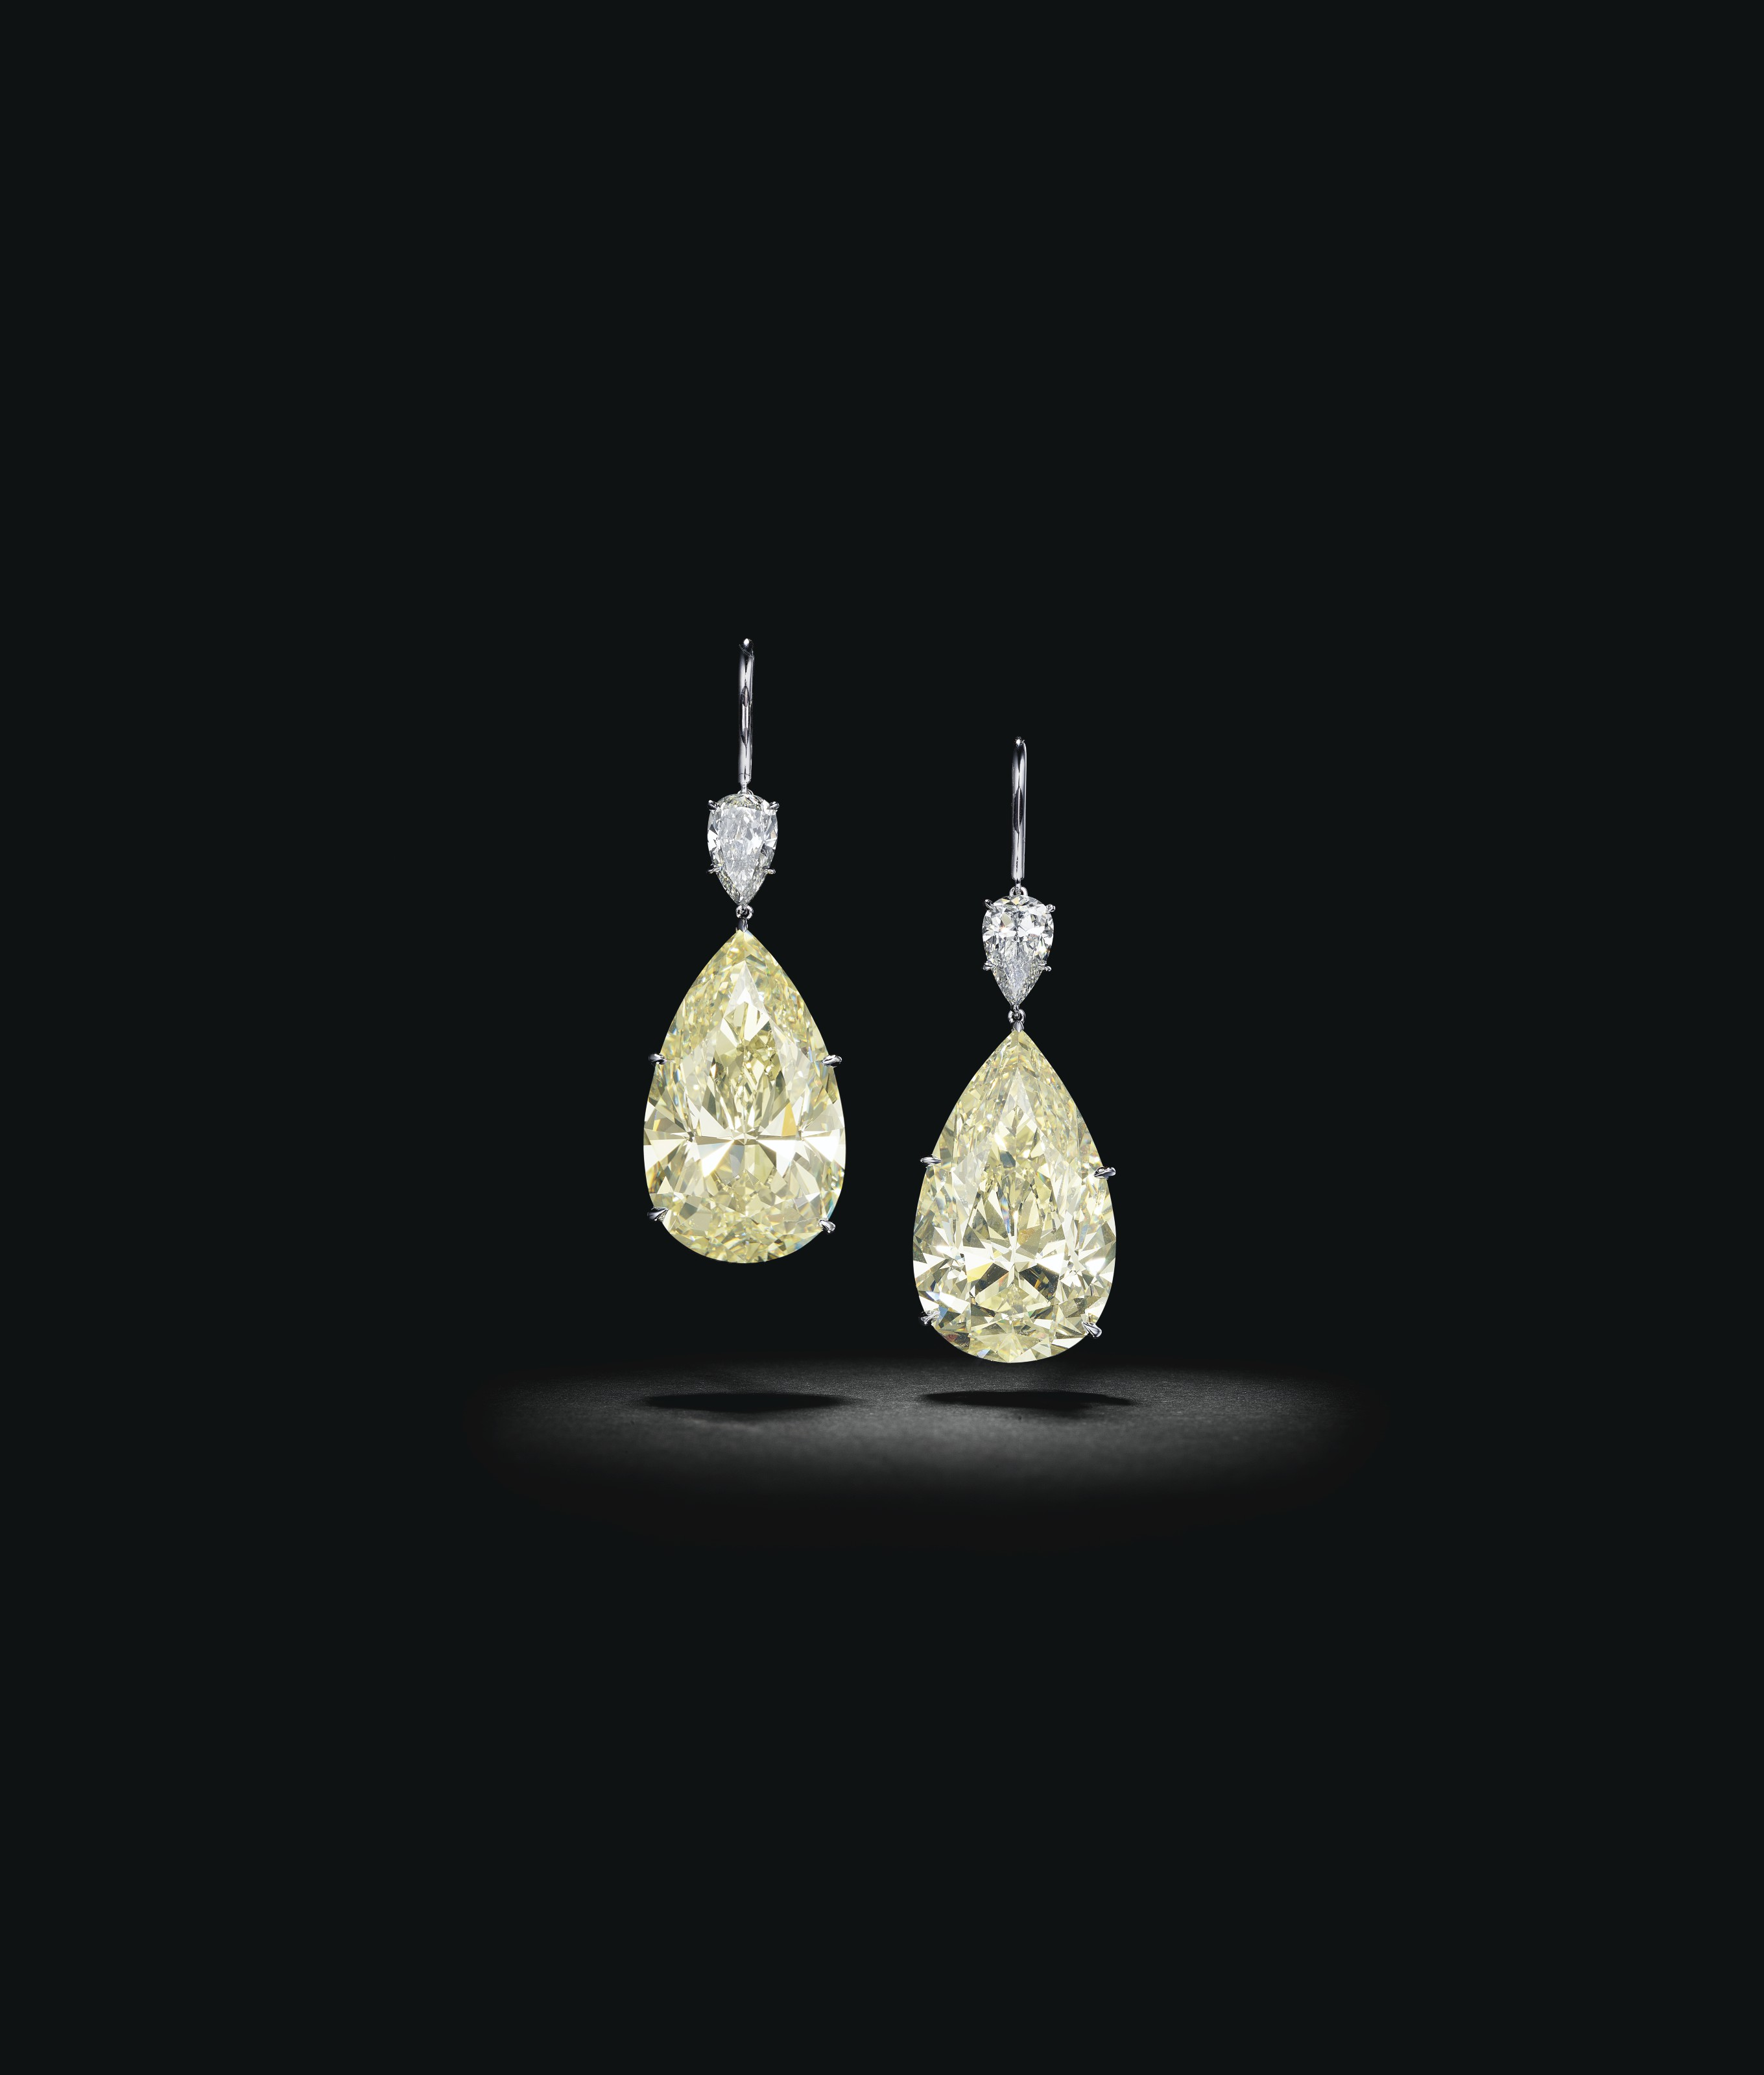 MAGNIFICENT DIAMOND EARRINGS